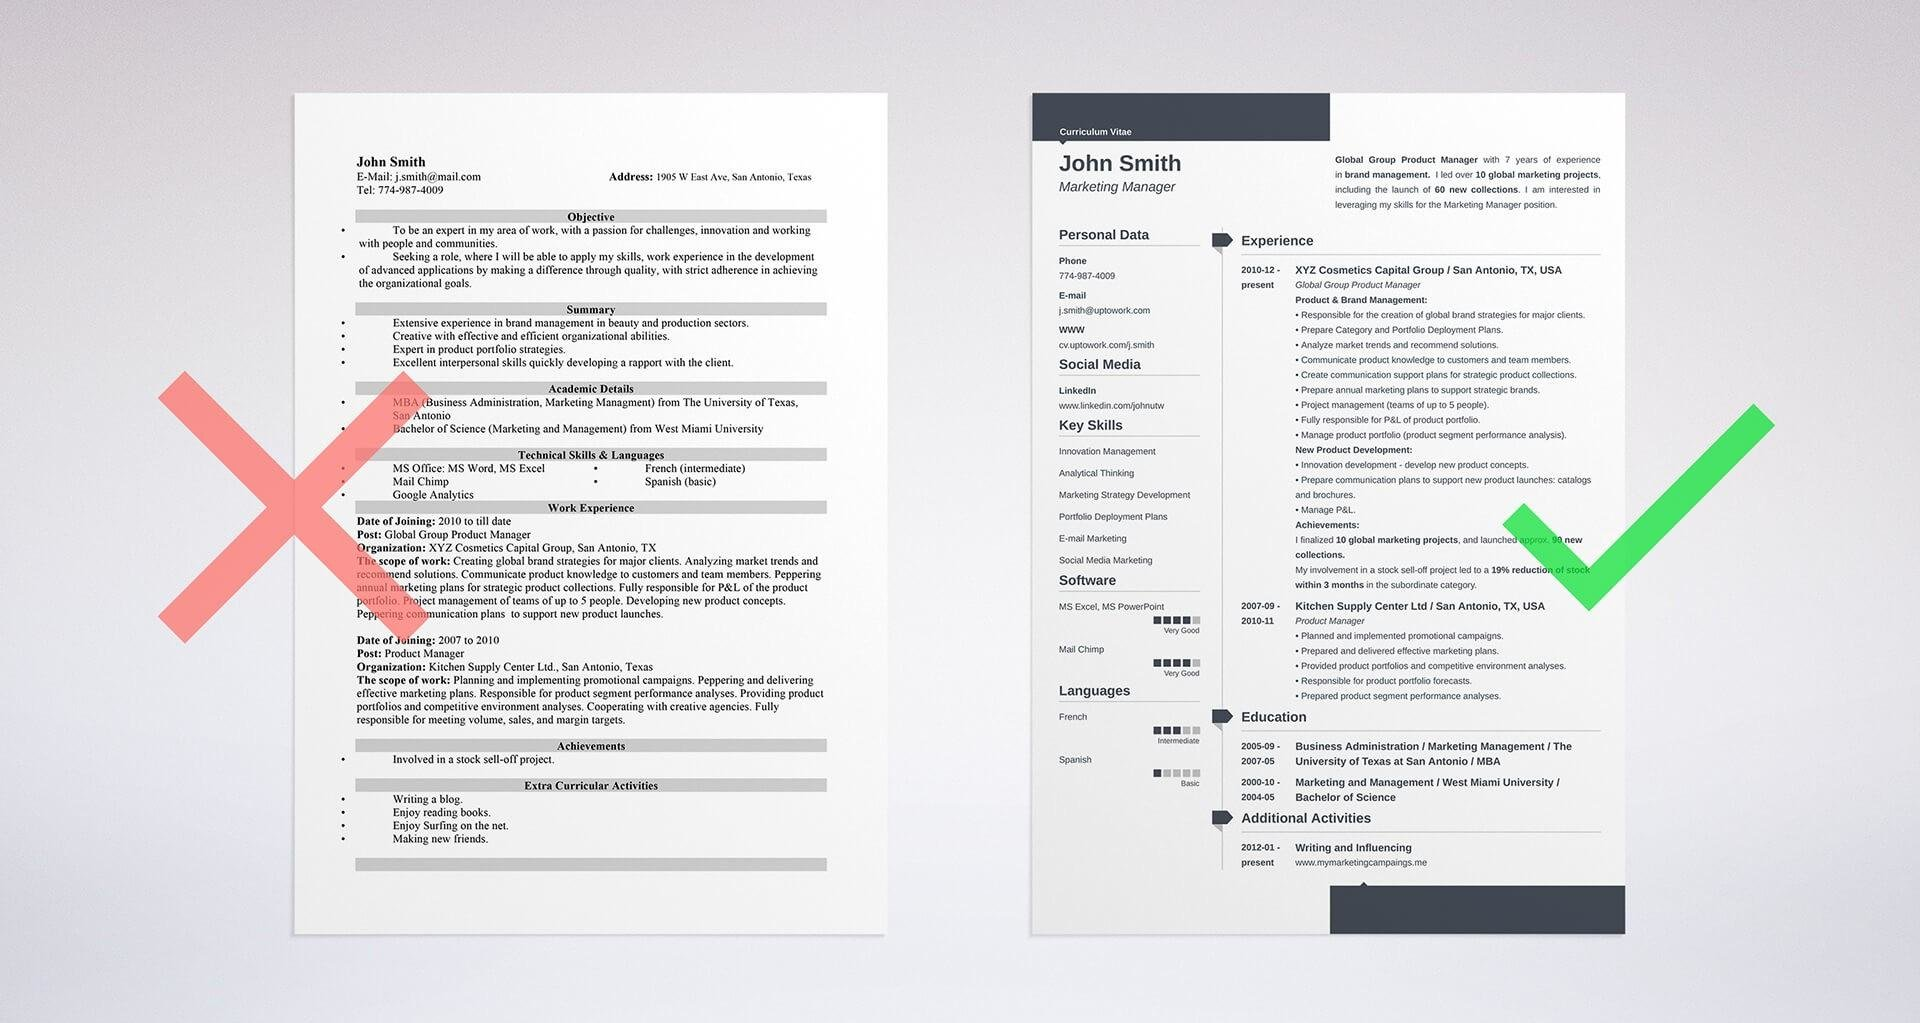 Attractive 20+ Resume Objective Examples   Use Them On Your Resume (Tips)